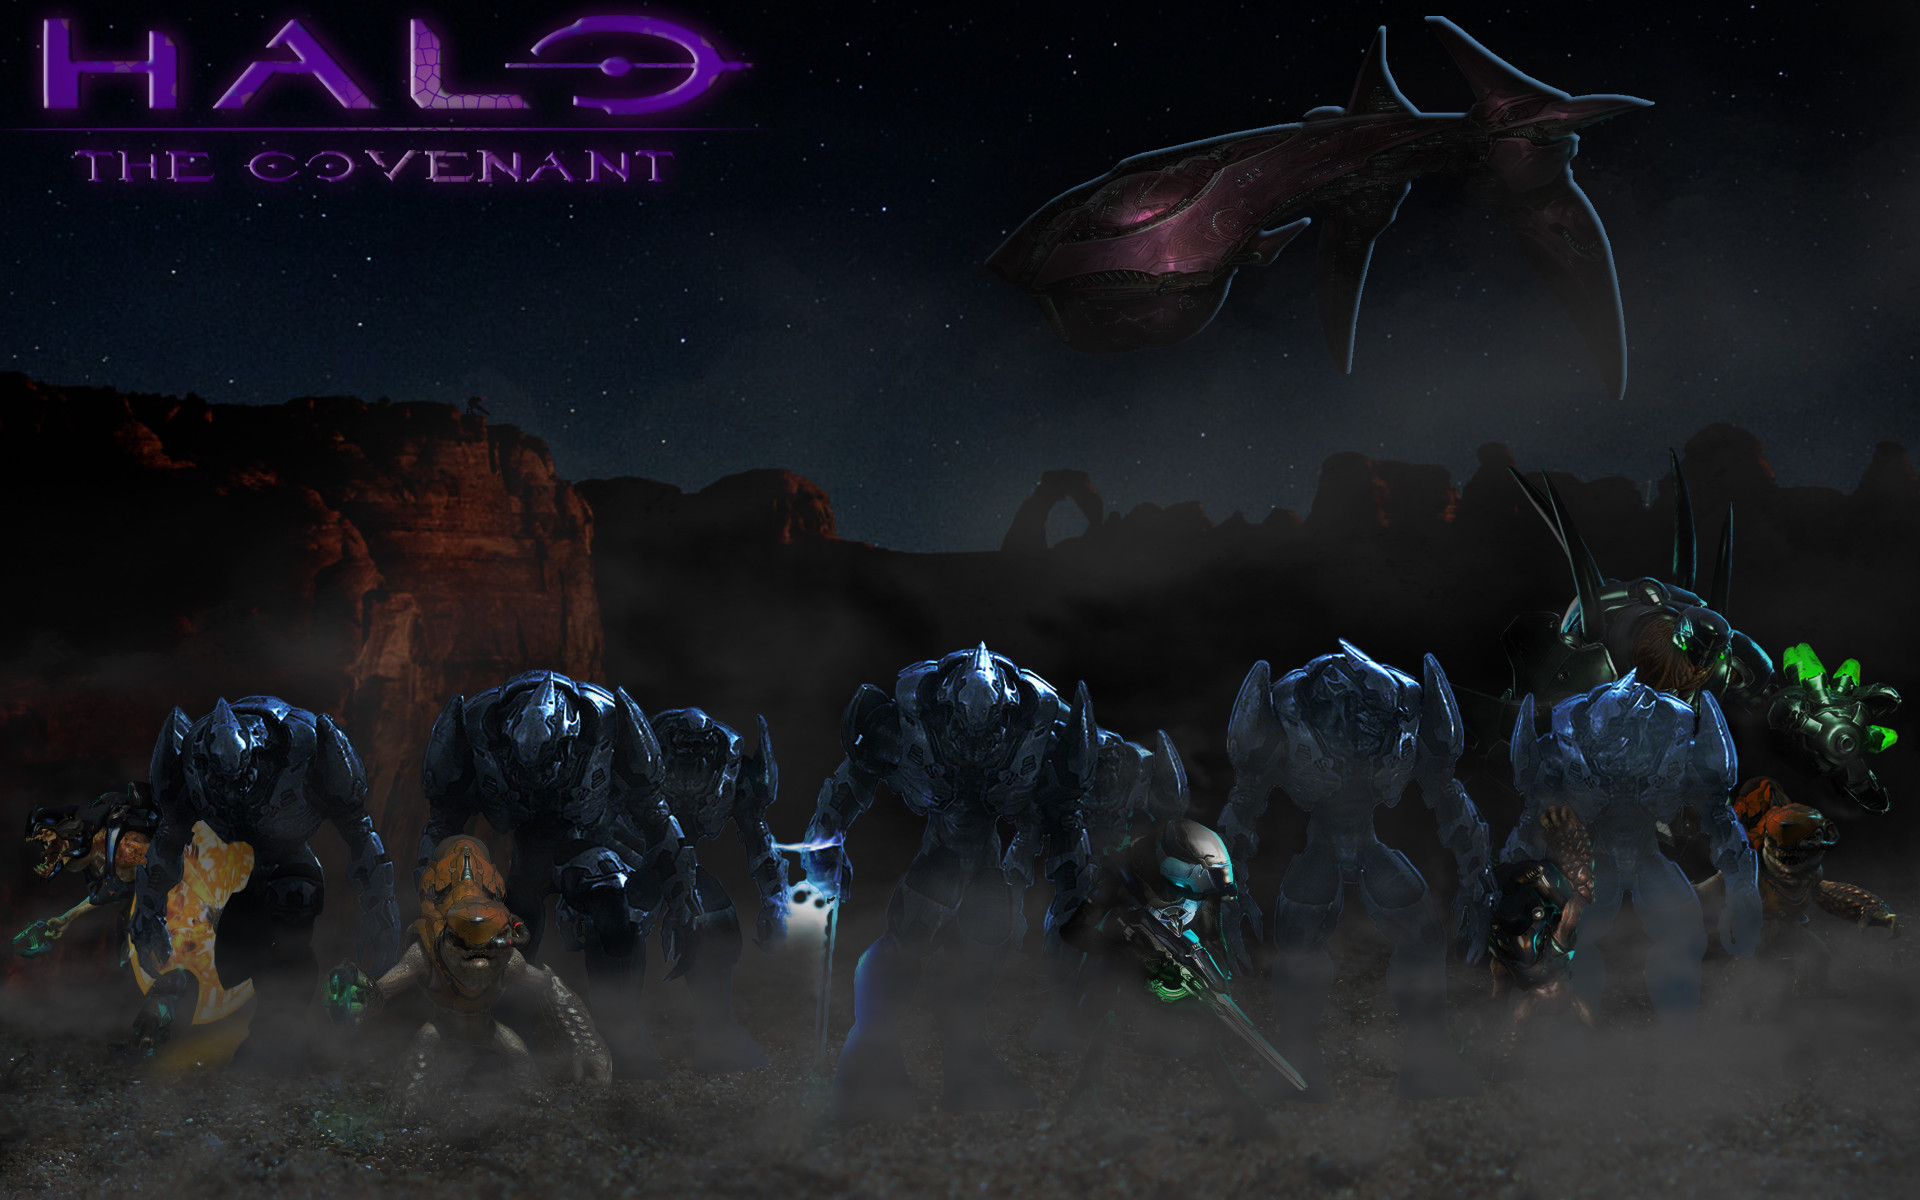 … Halo The Covenant (wallpaper) by Nick004